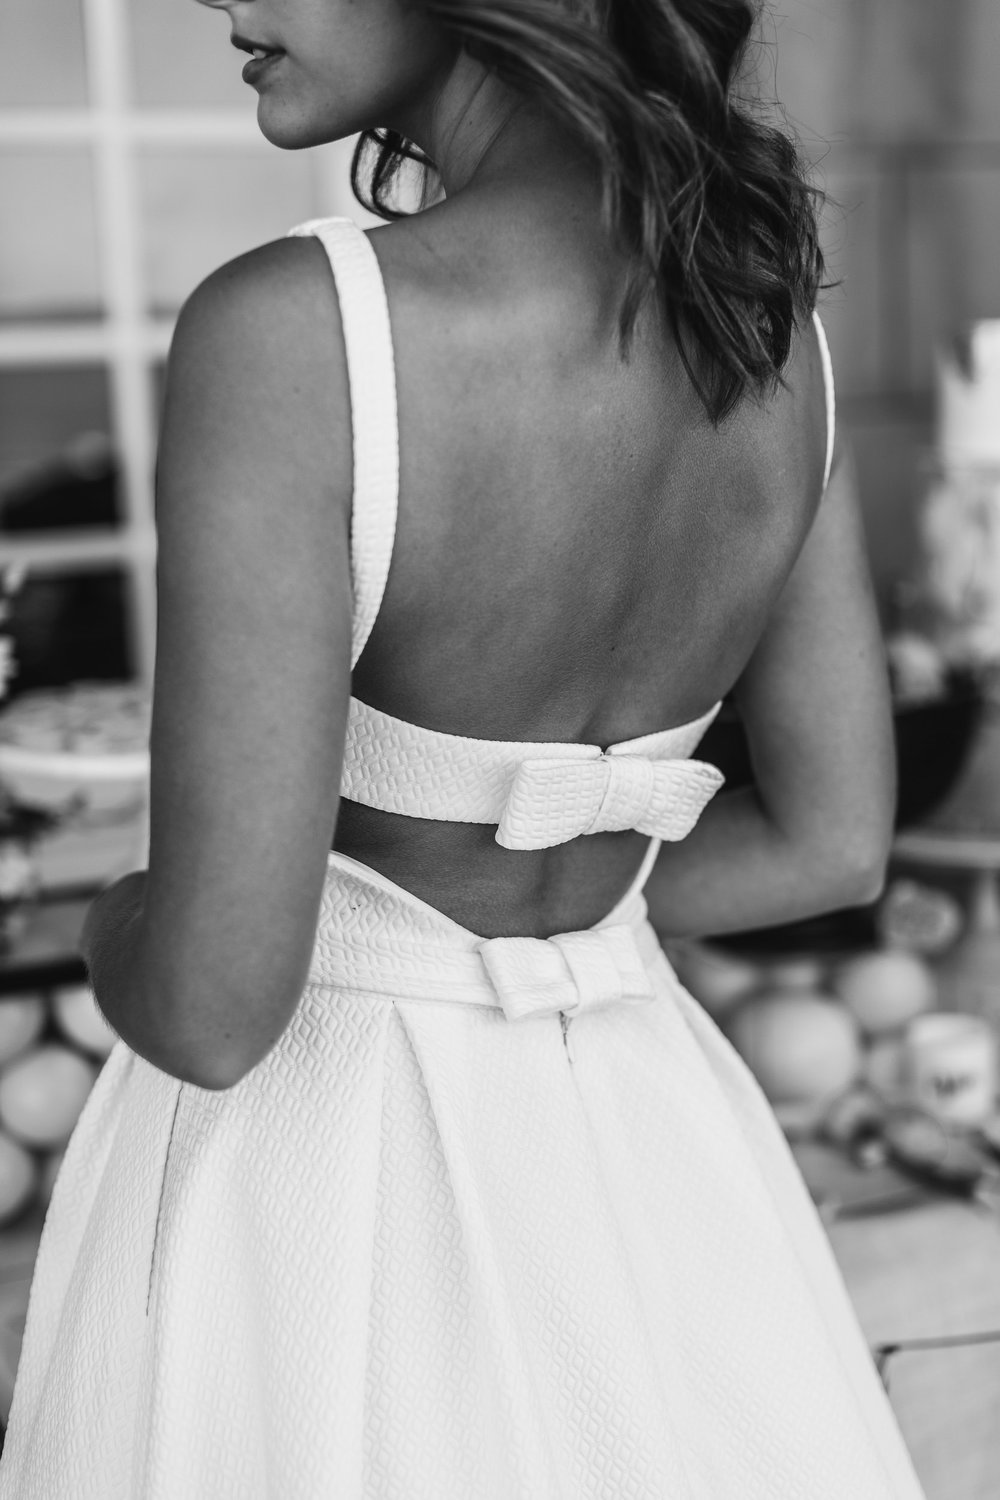 Black and White Photo Bride, Low Back Dress | Wedding Photography by Kas Richards